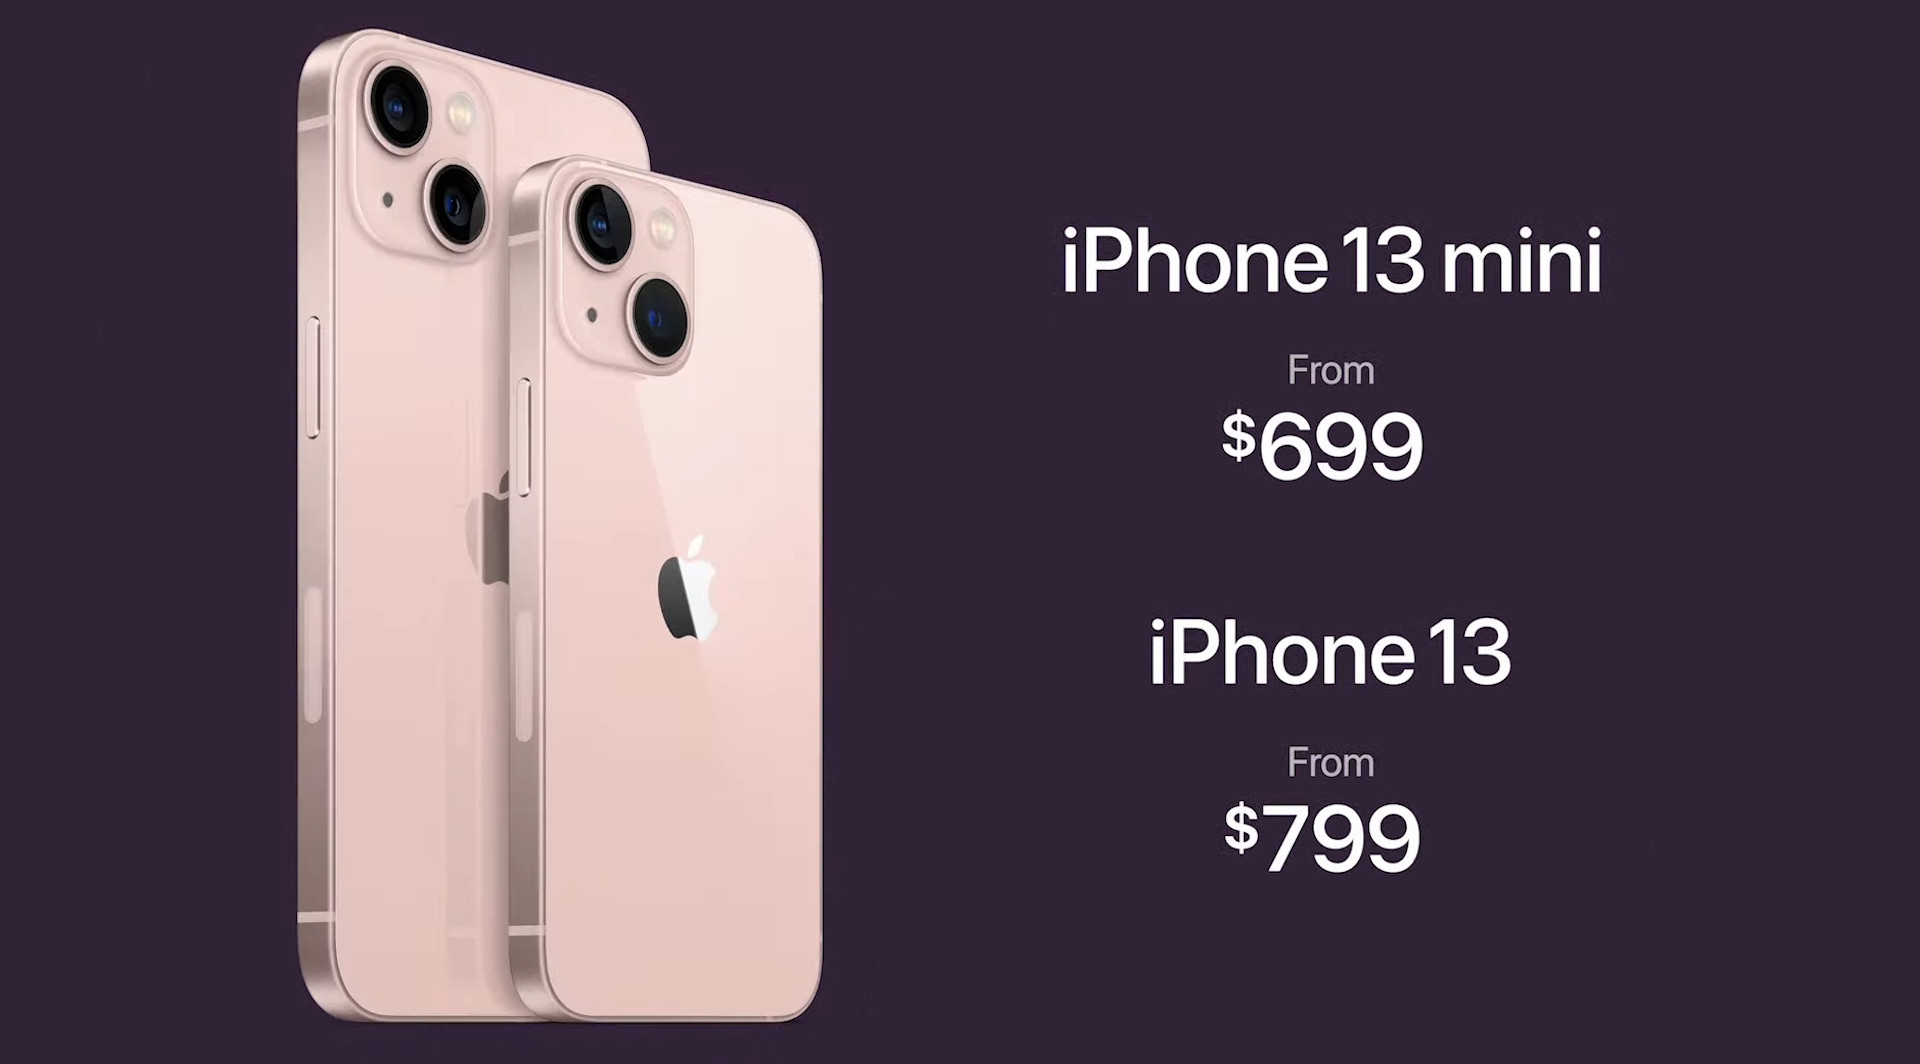 Price points for both new iPhone 13 models are already out.